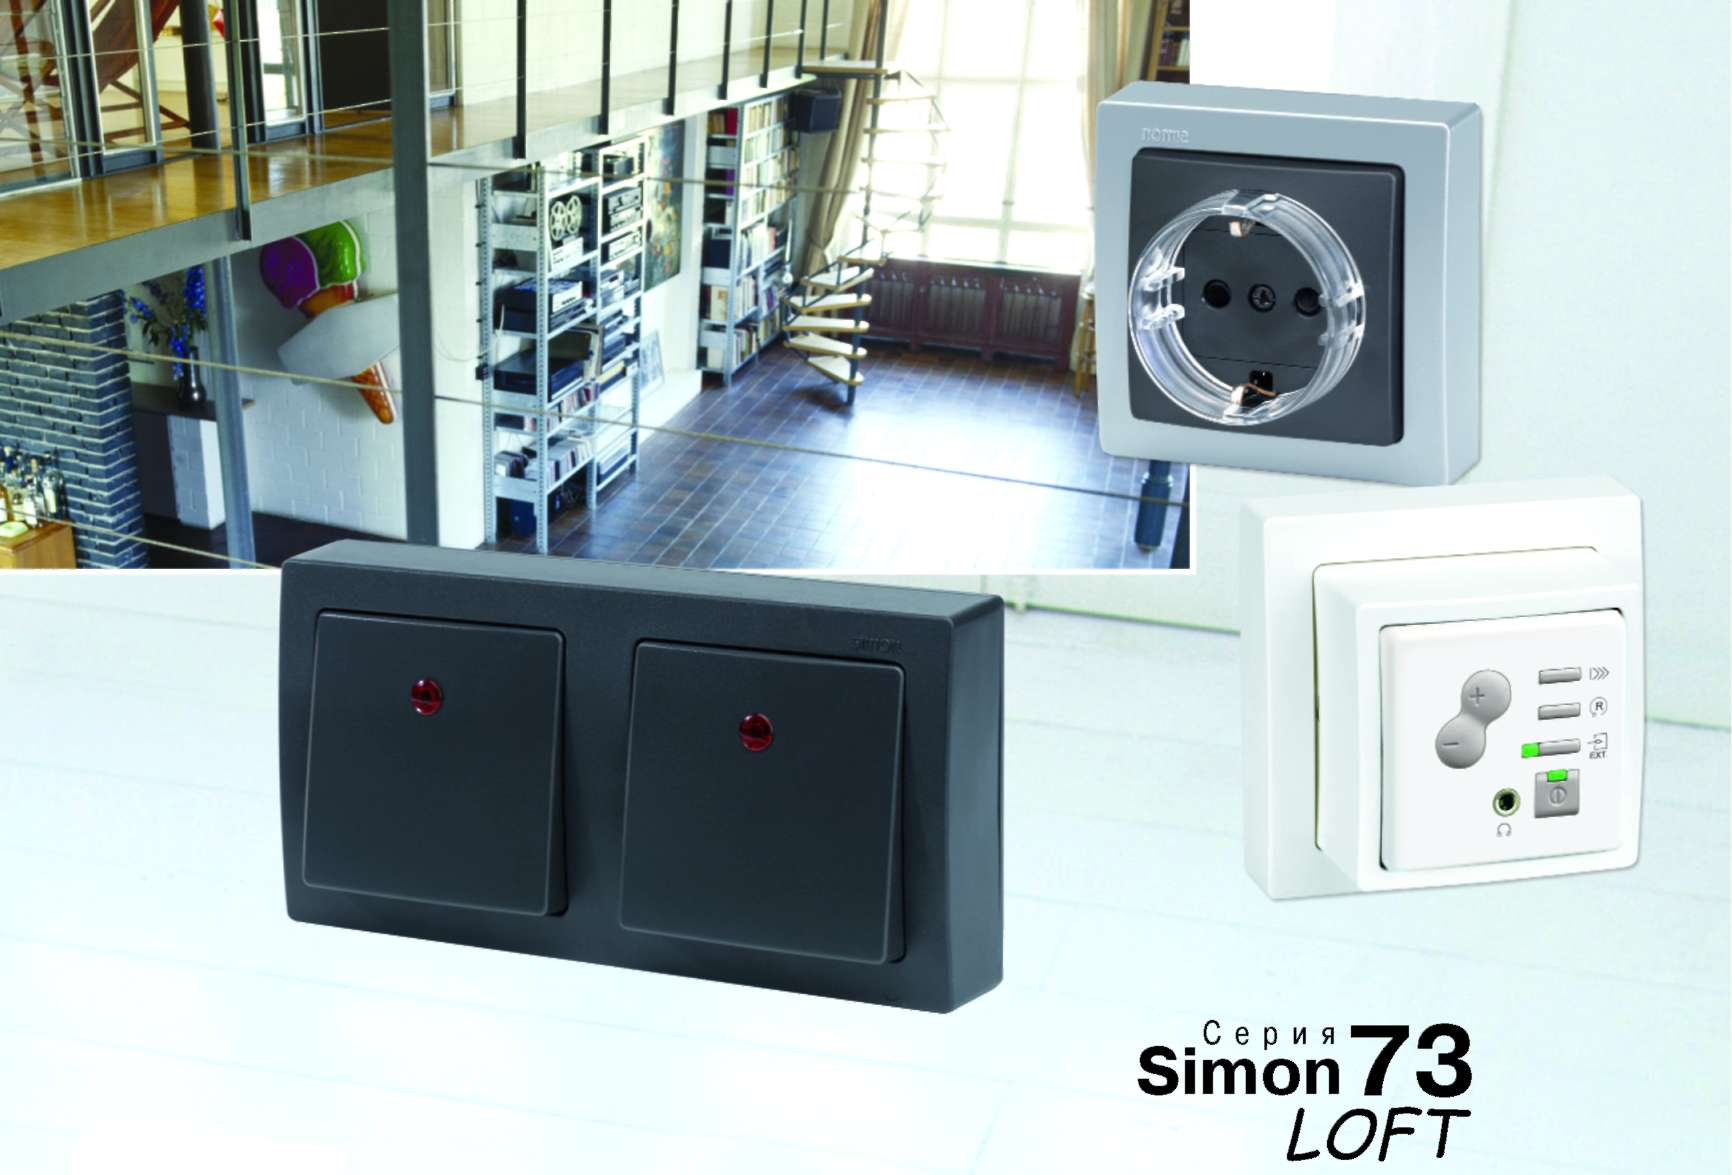 simon 73loft art2